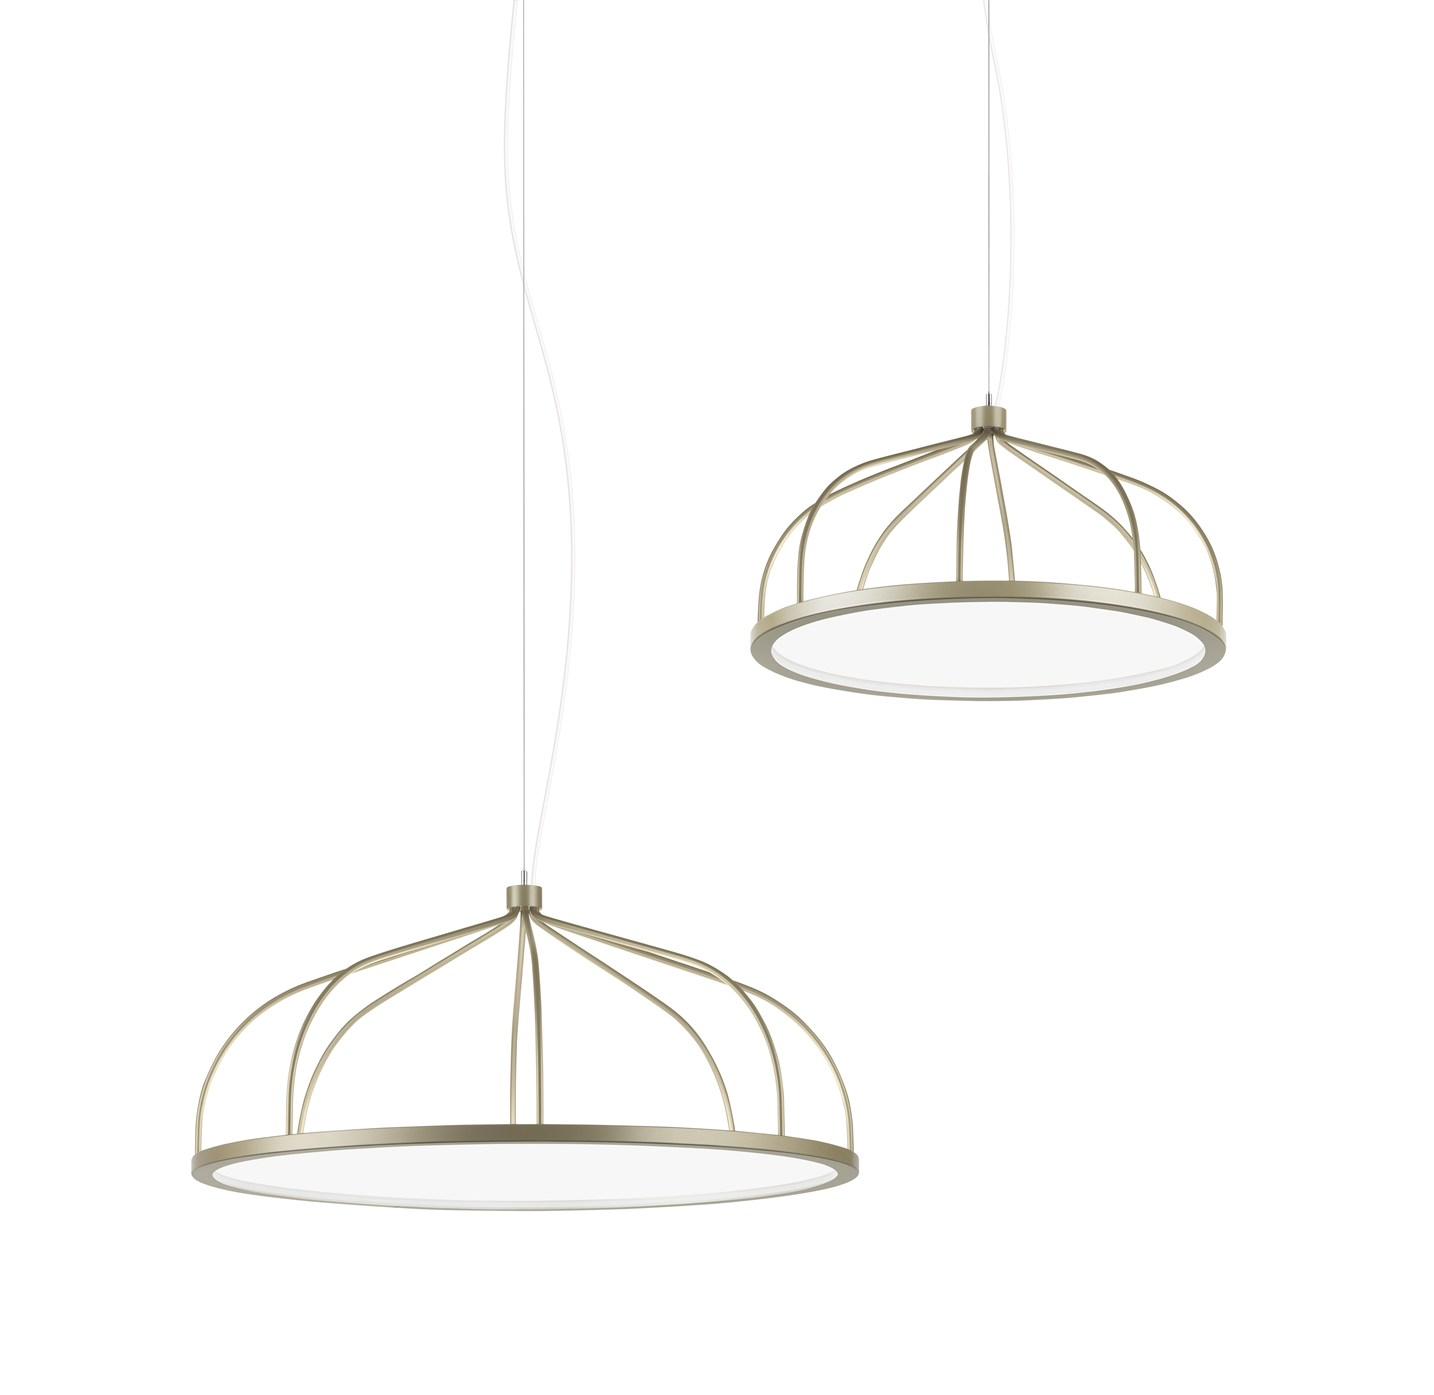 Plane Lamps by Front for Zero